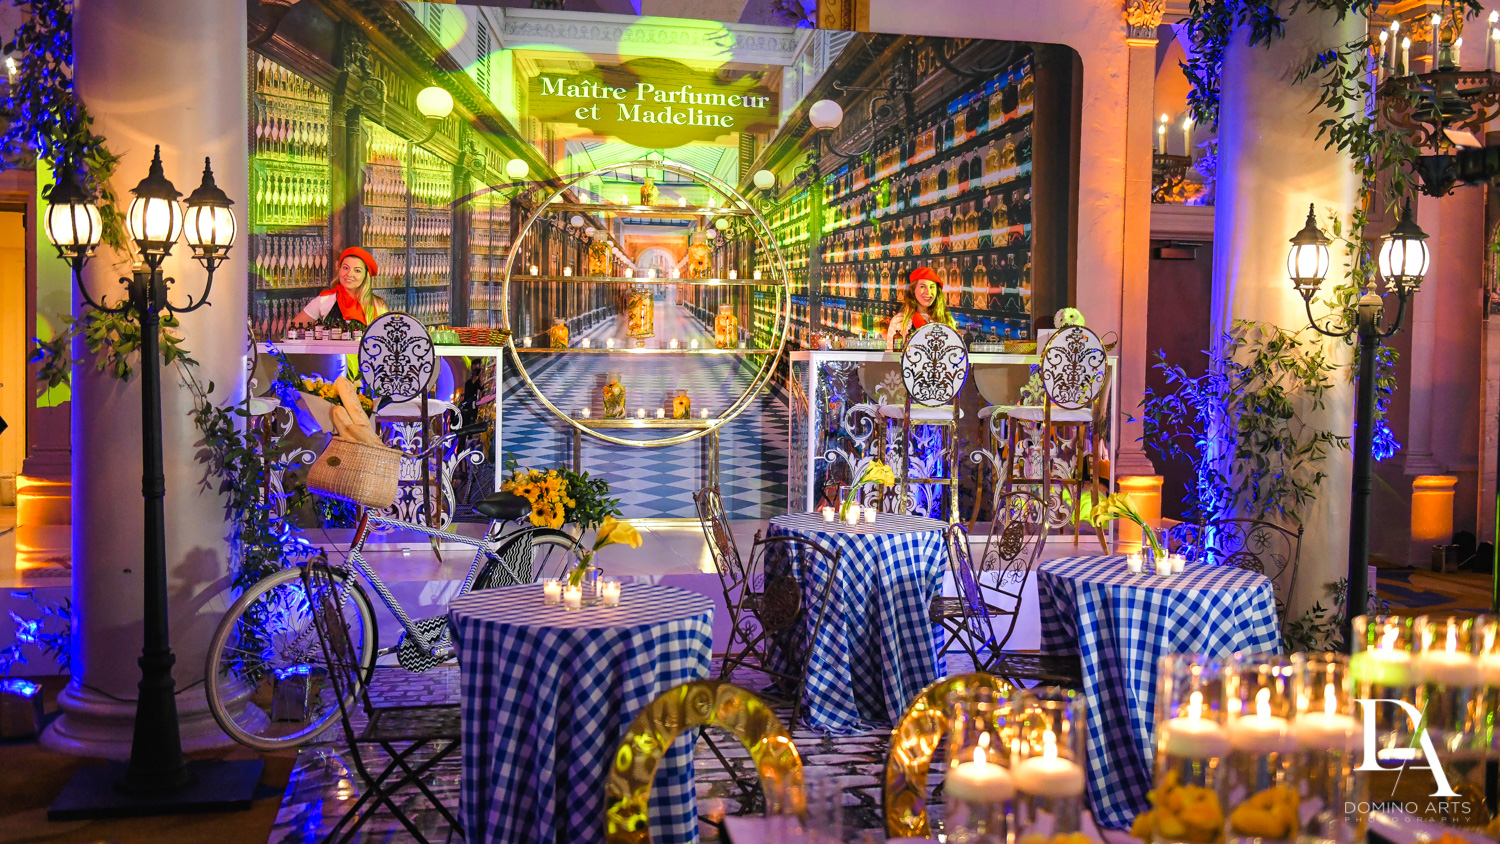 theme decor for Madeline in Paris theme Bat Mitzvah at Boca Raton Resort and Club by Domino Arts Photography